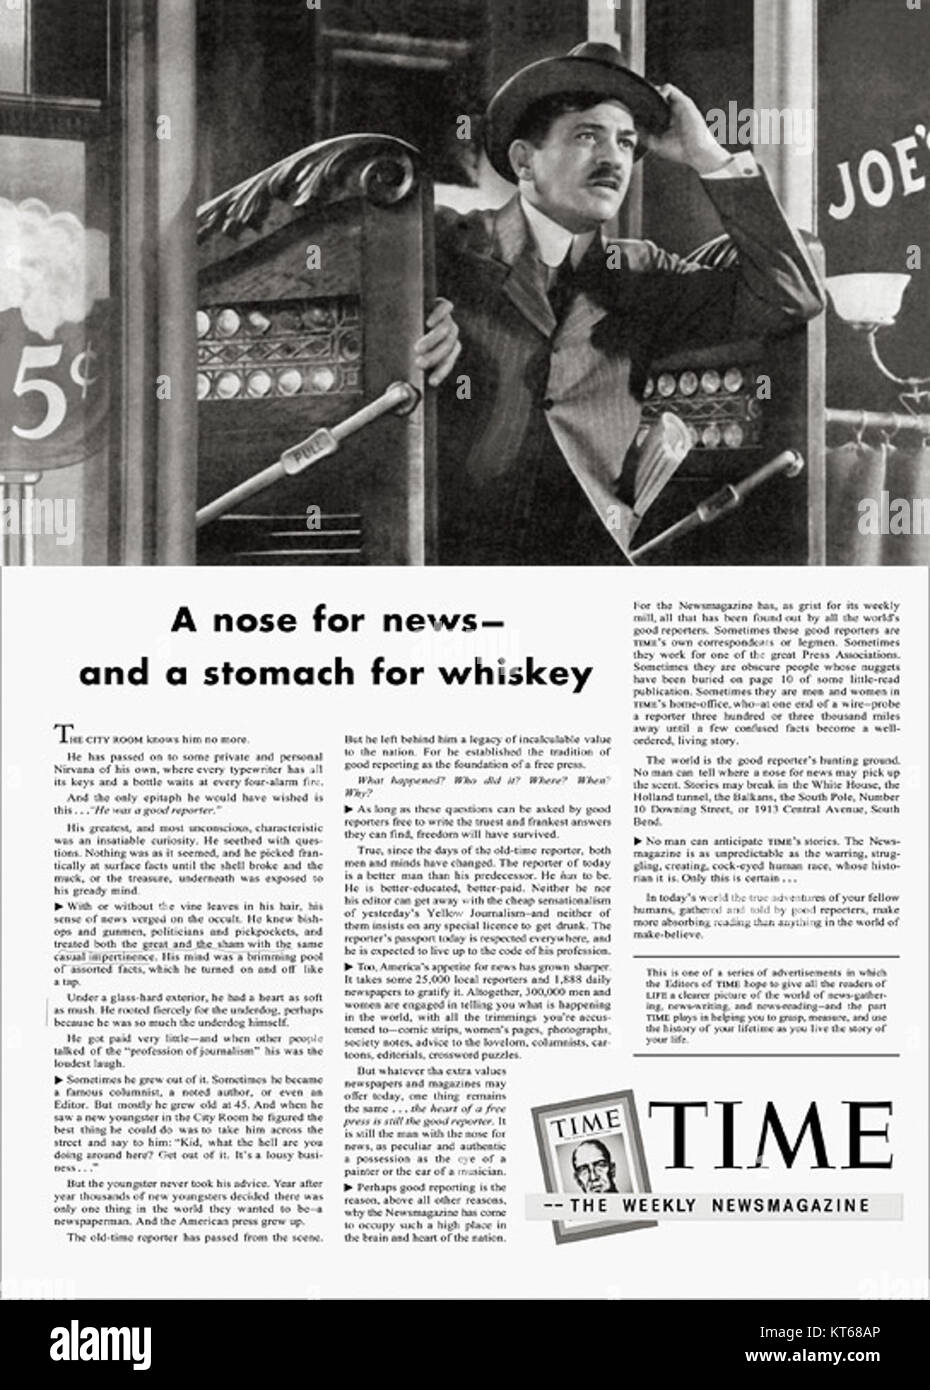 Time Magazine Ad - C3B9nknown - Stock Image